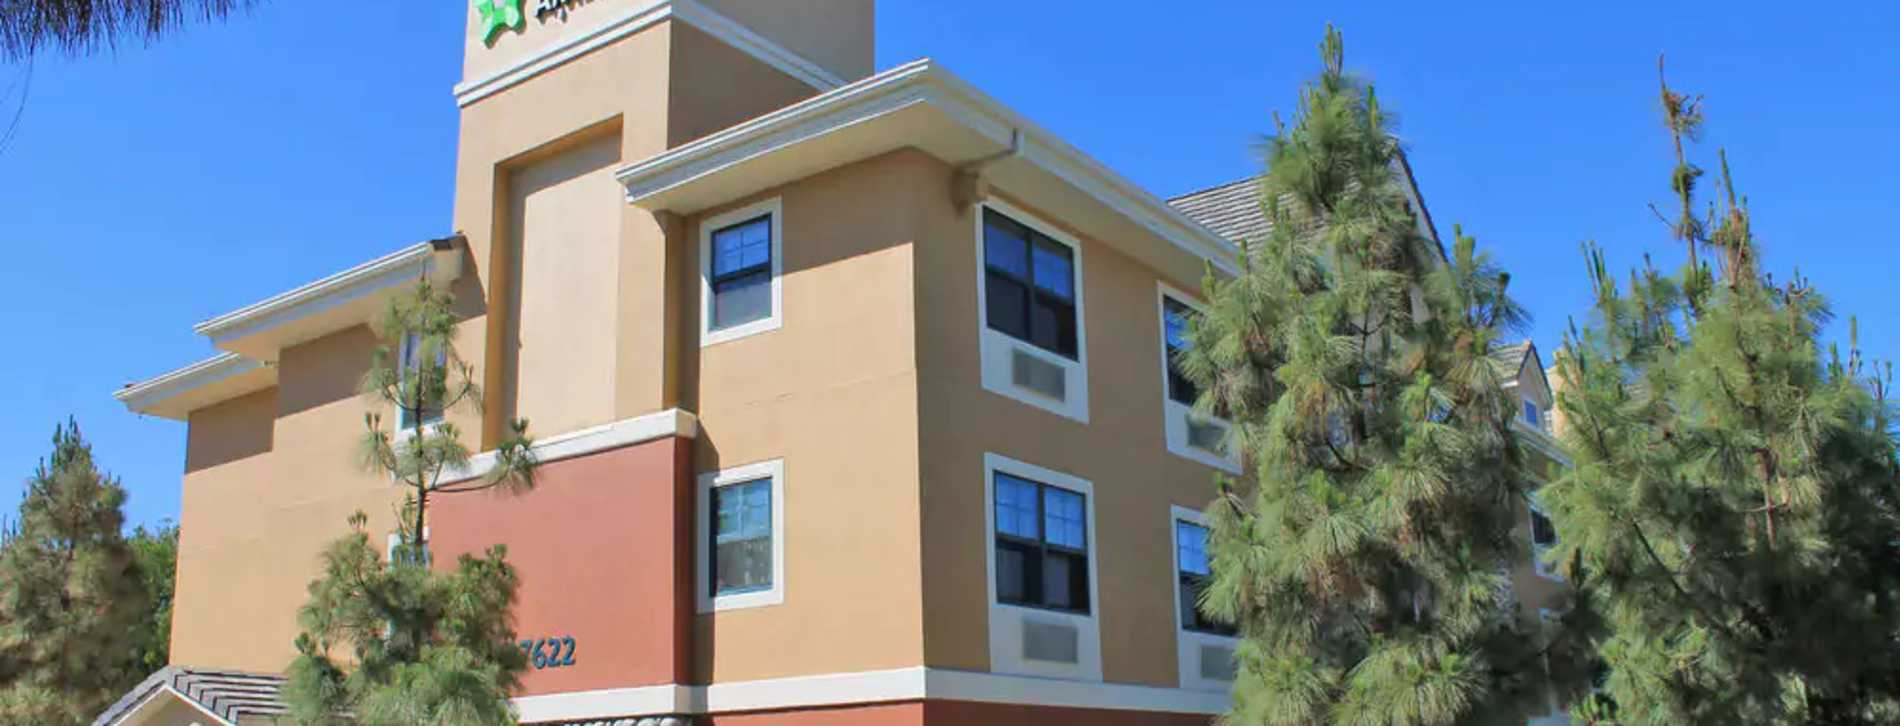 Extended Stay America - Temecula